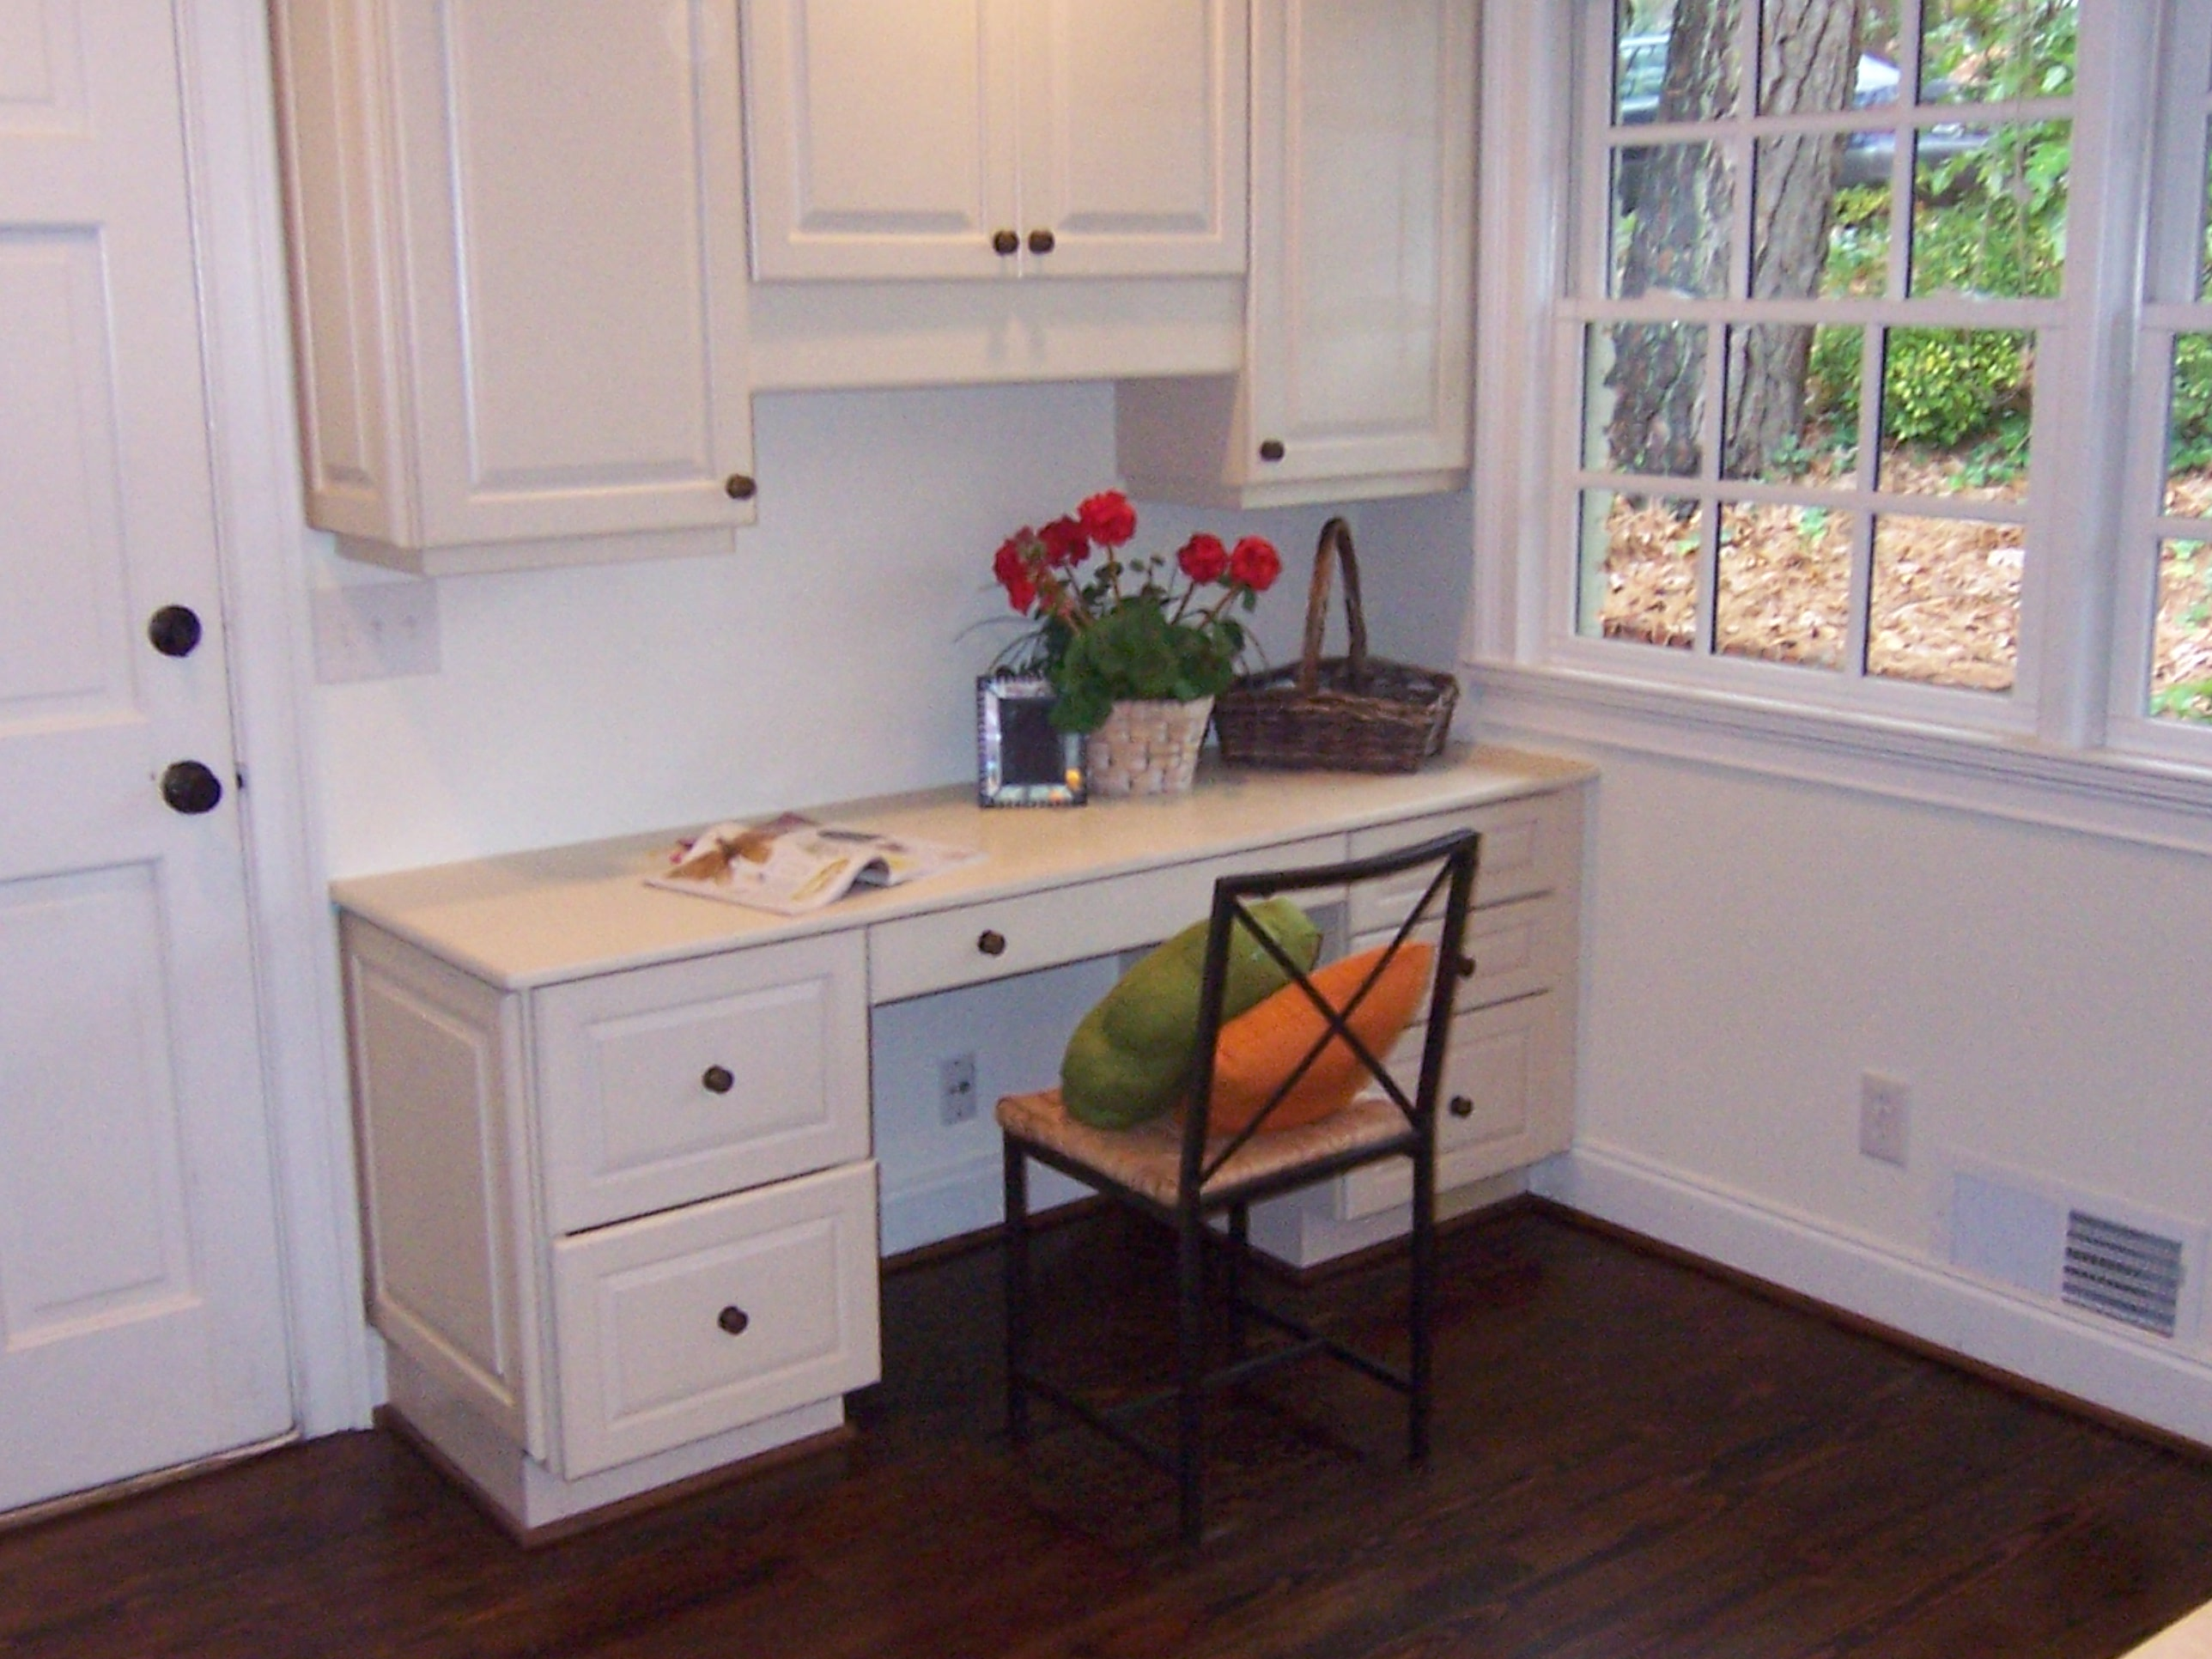 Chastain-Park-Kitchen-Desk-Buckhead-Paces-Construction-Atlanta